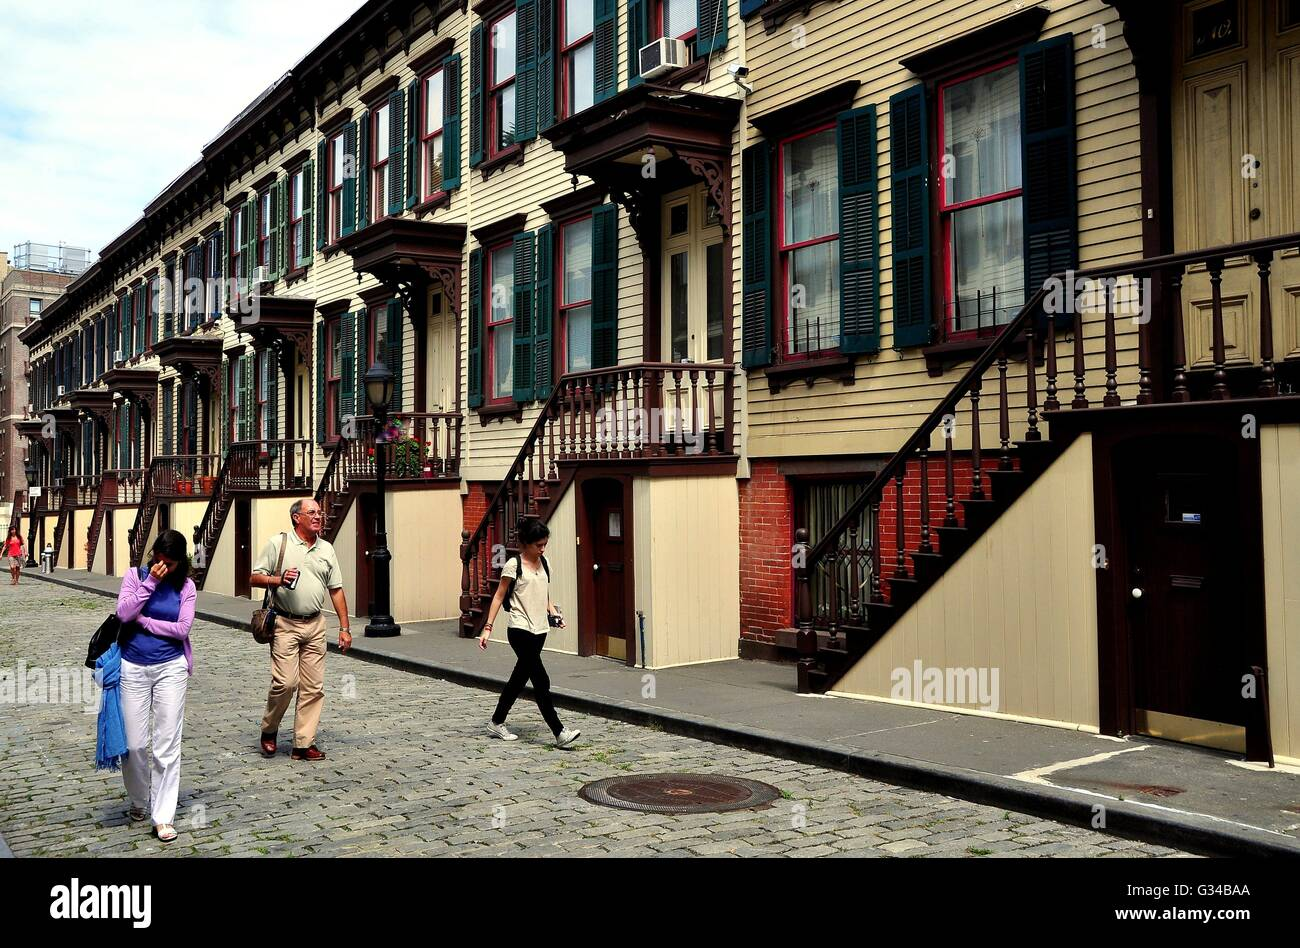 New York City: 1882 wooden row houses with stairway stoops and basement entry doors on Sylvan Terrace Stock Photo